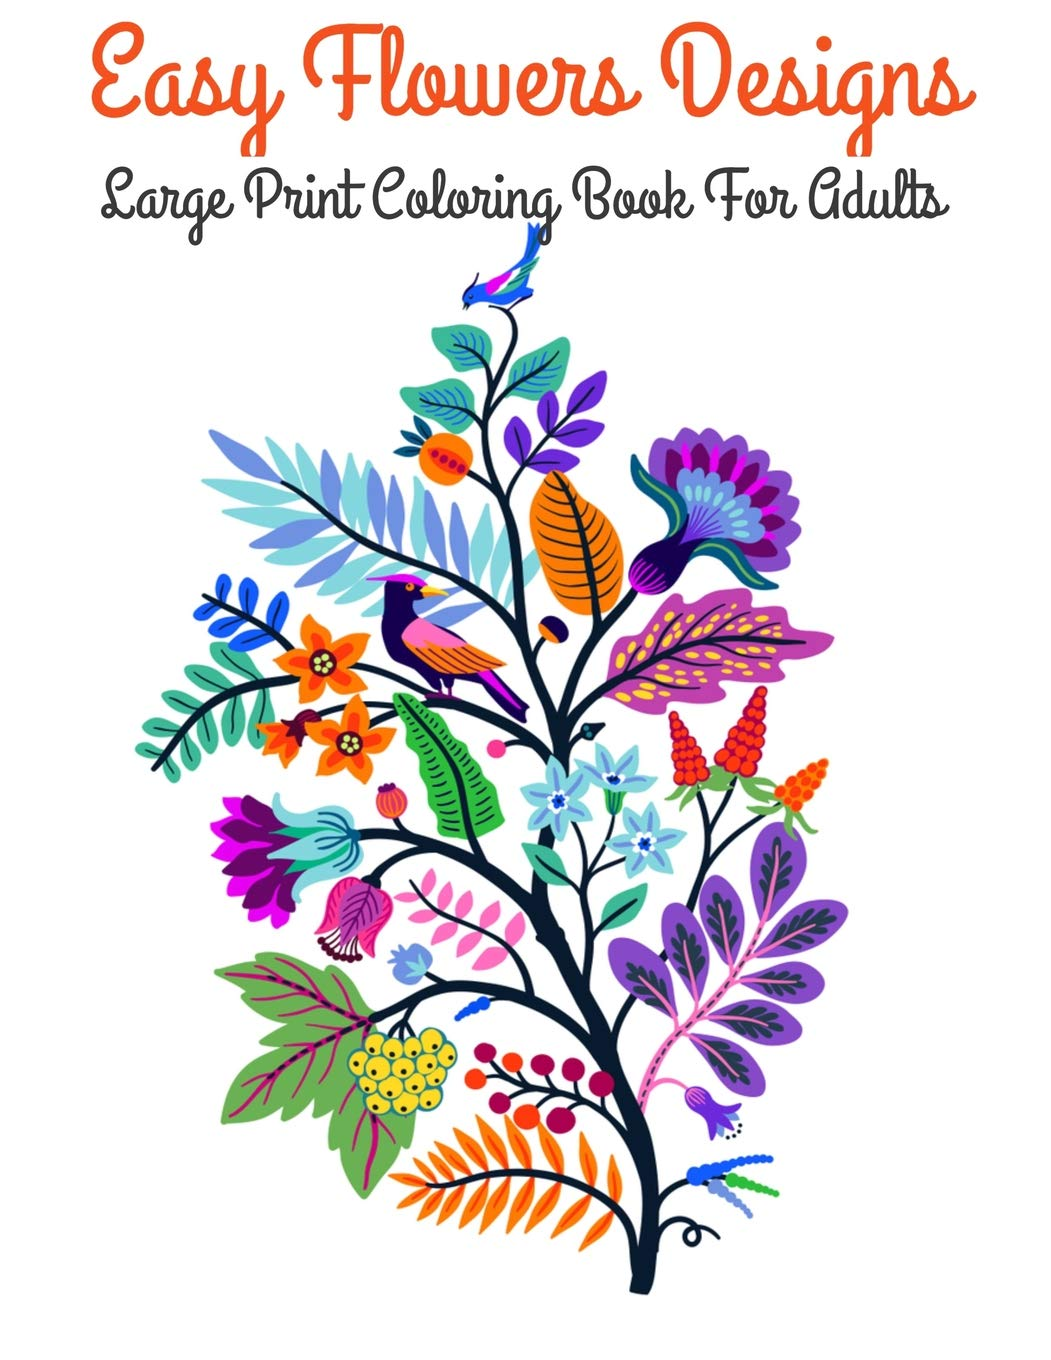 Amazon Com Easy Flowers Designs Large Print Coloring Book For